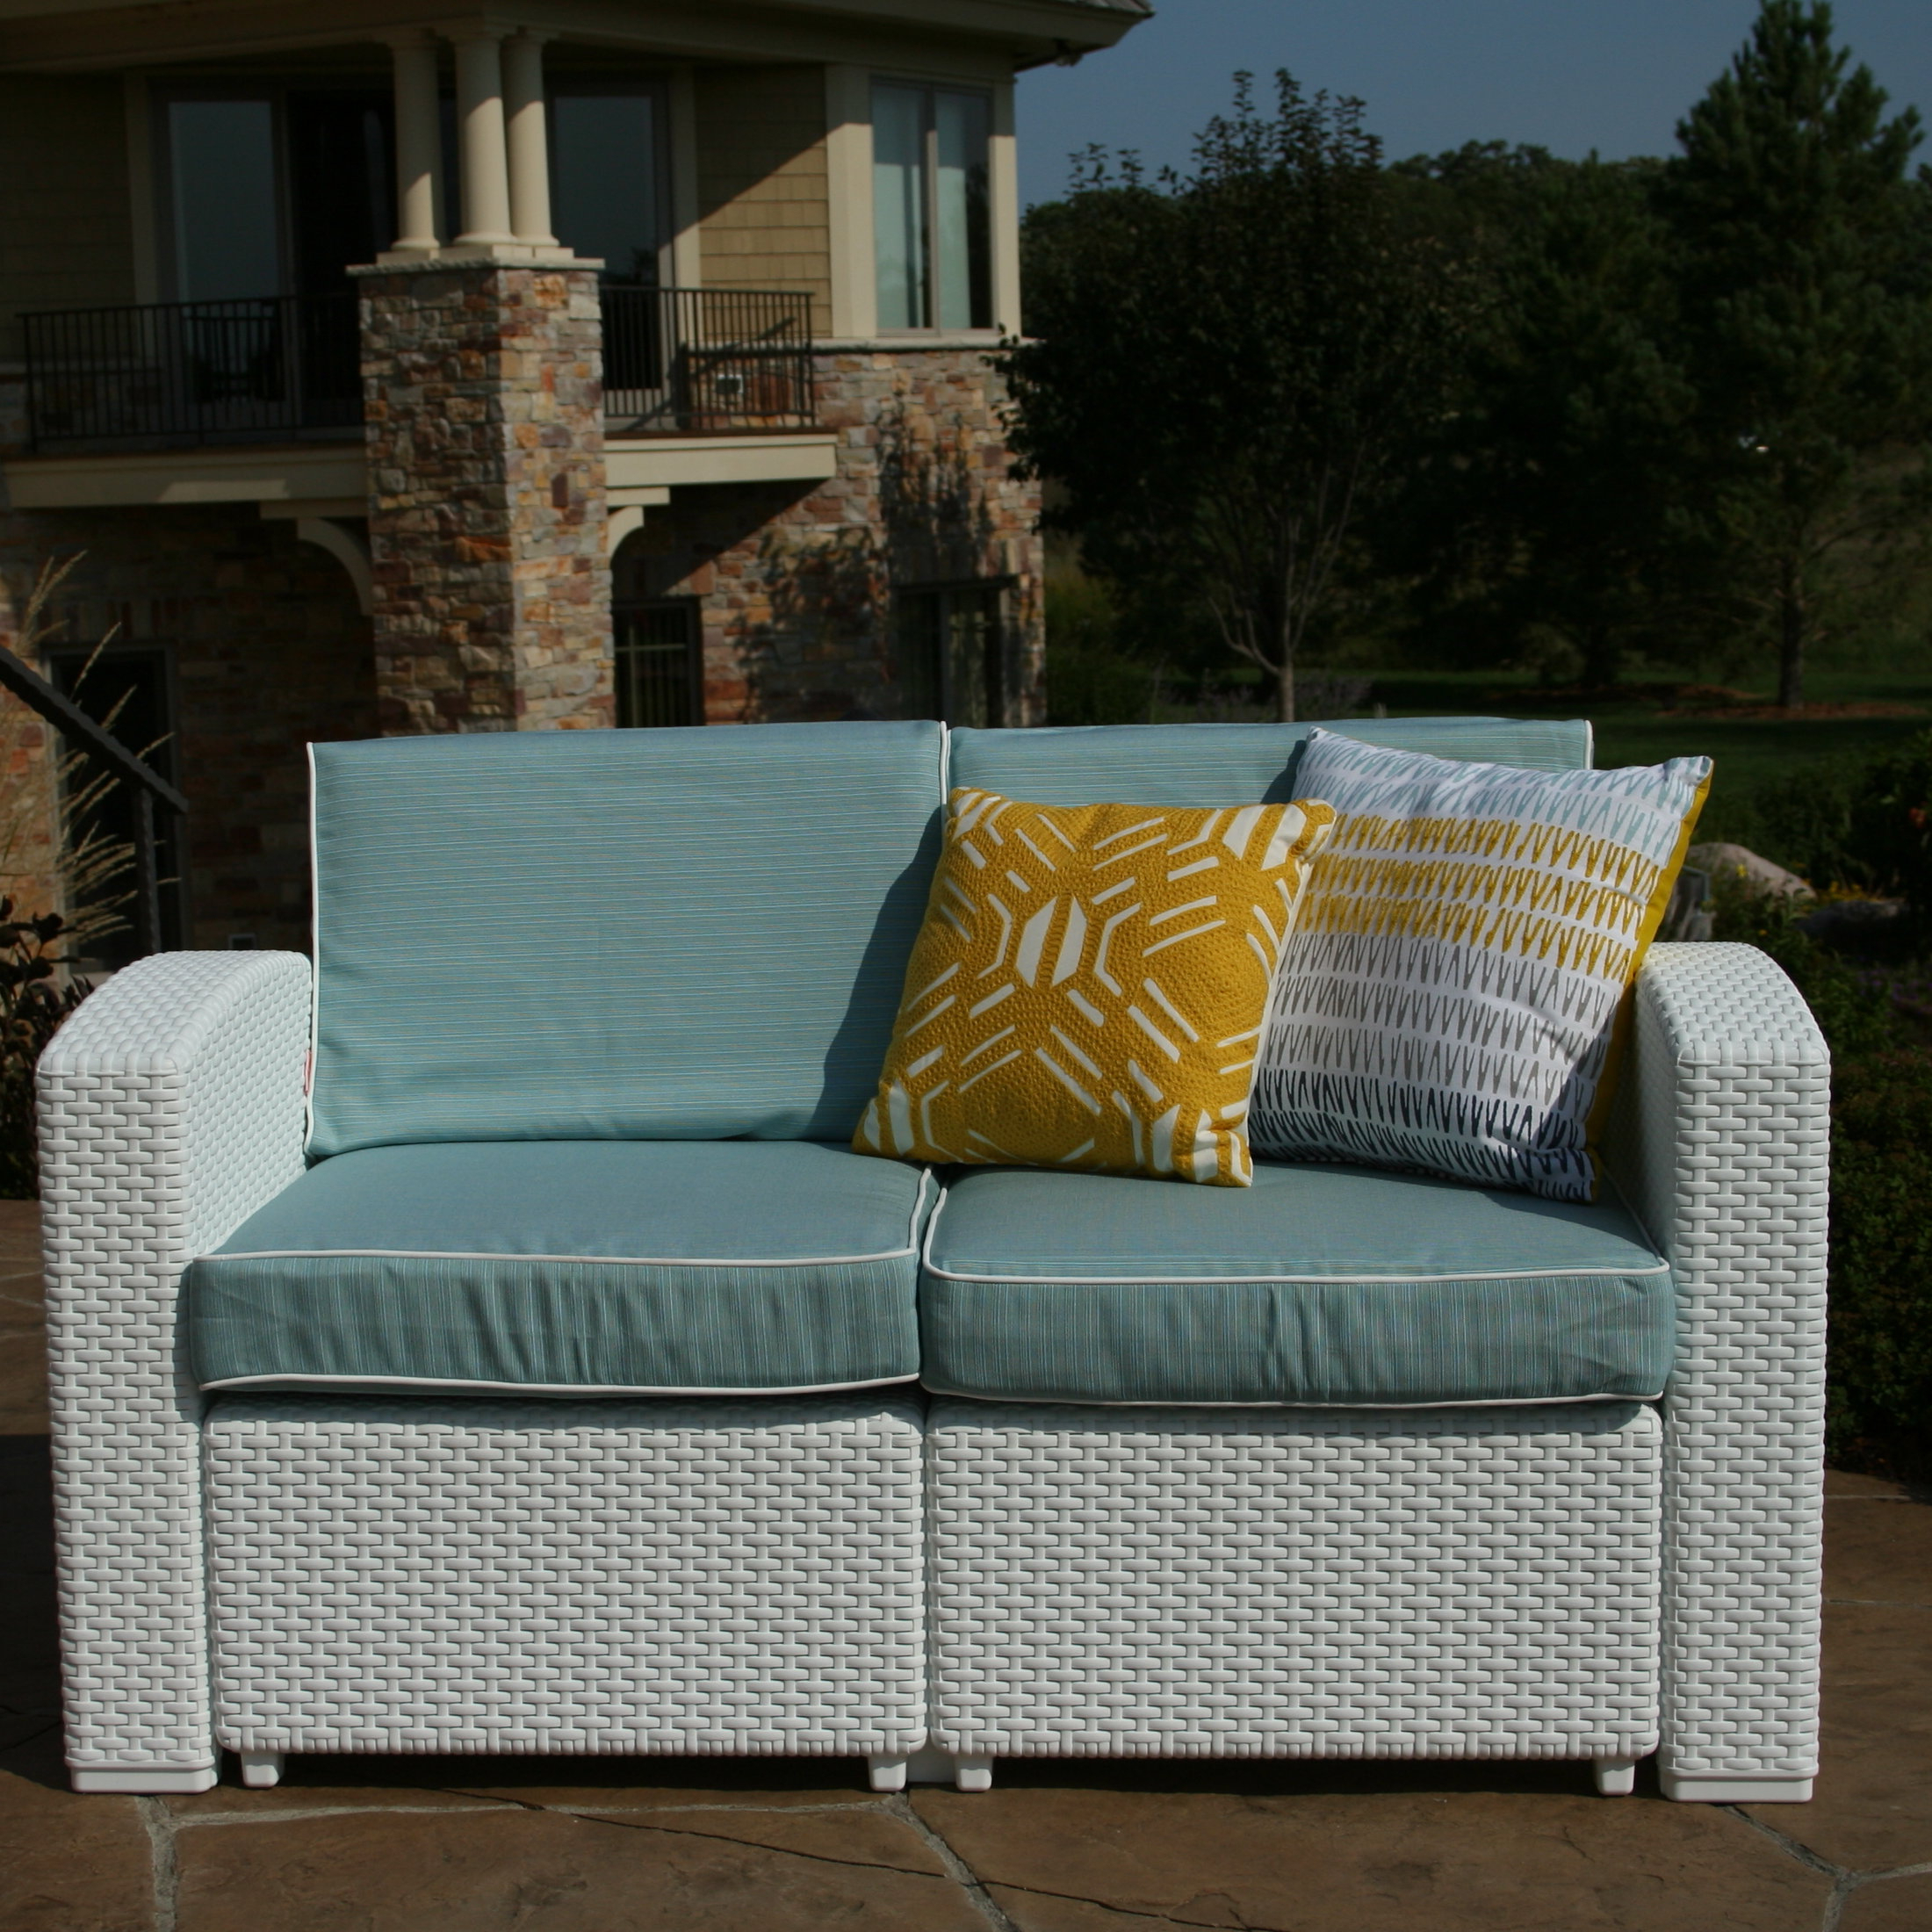 Mendelson Loveseats With Cushion Regarding Most Up To Date Loggins Patio Loveseat With Cushions (View 11 of 20)